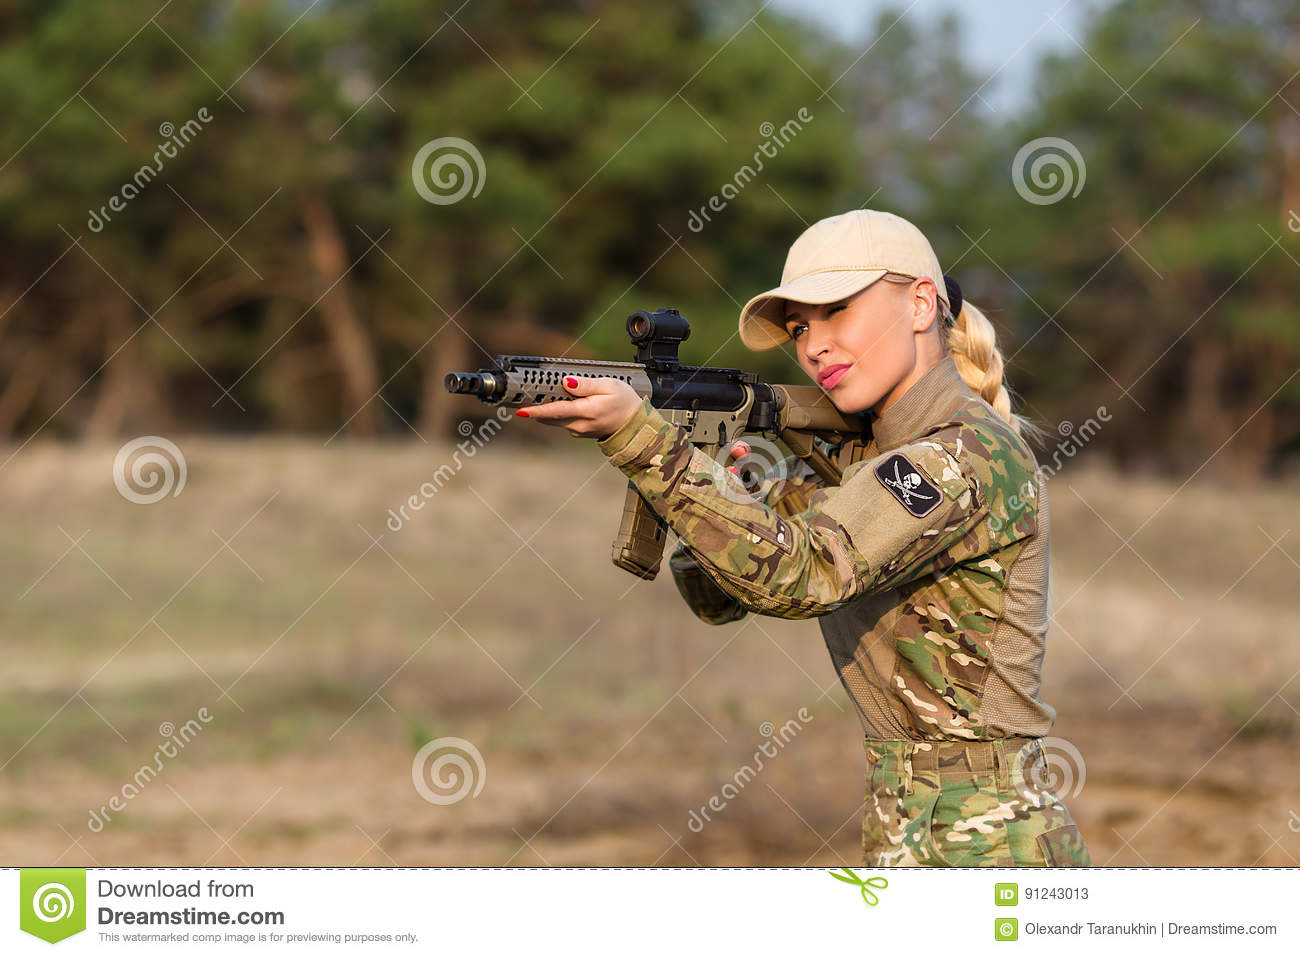 Beautiful woman ranger with rifle in camouflage